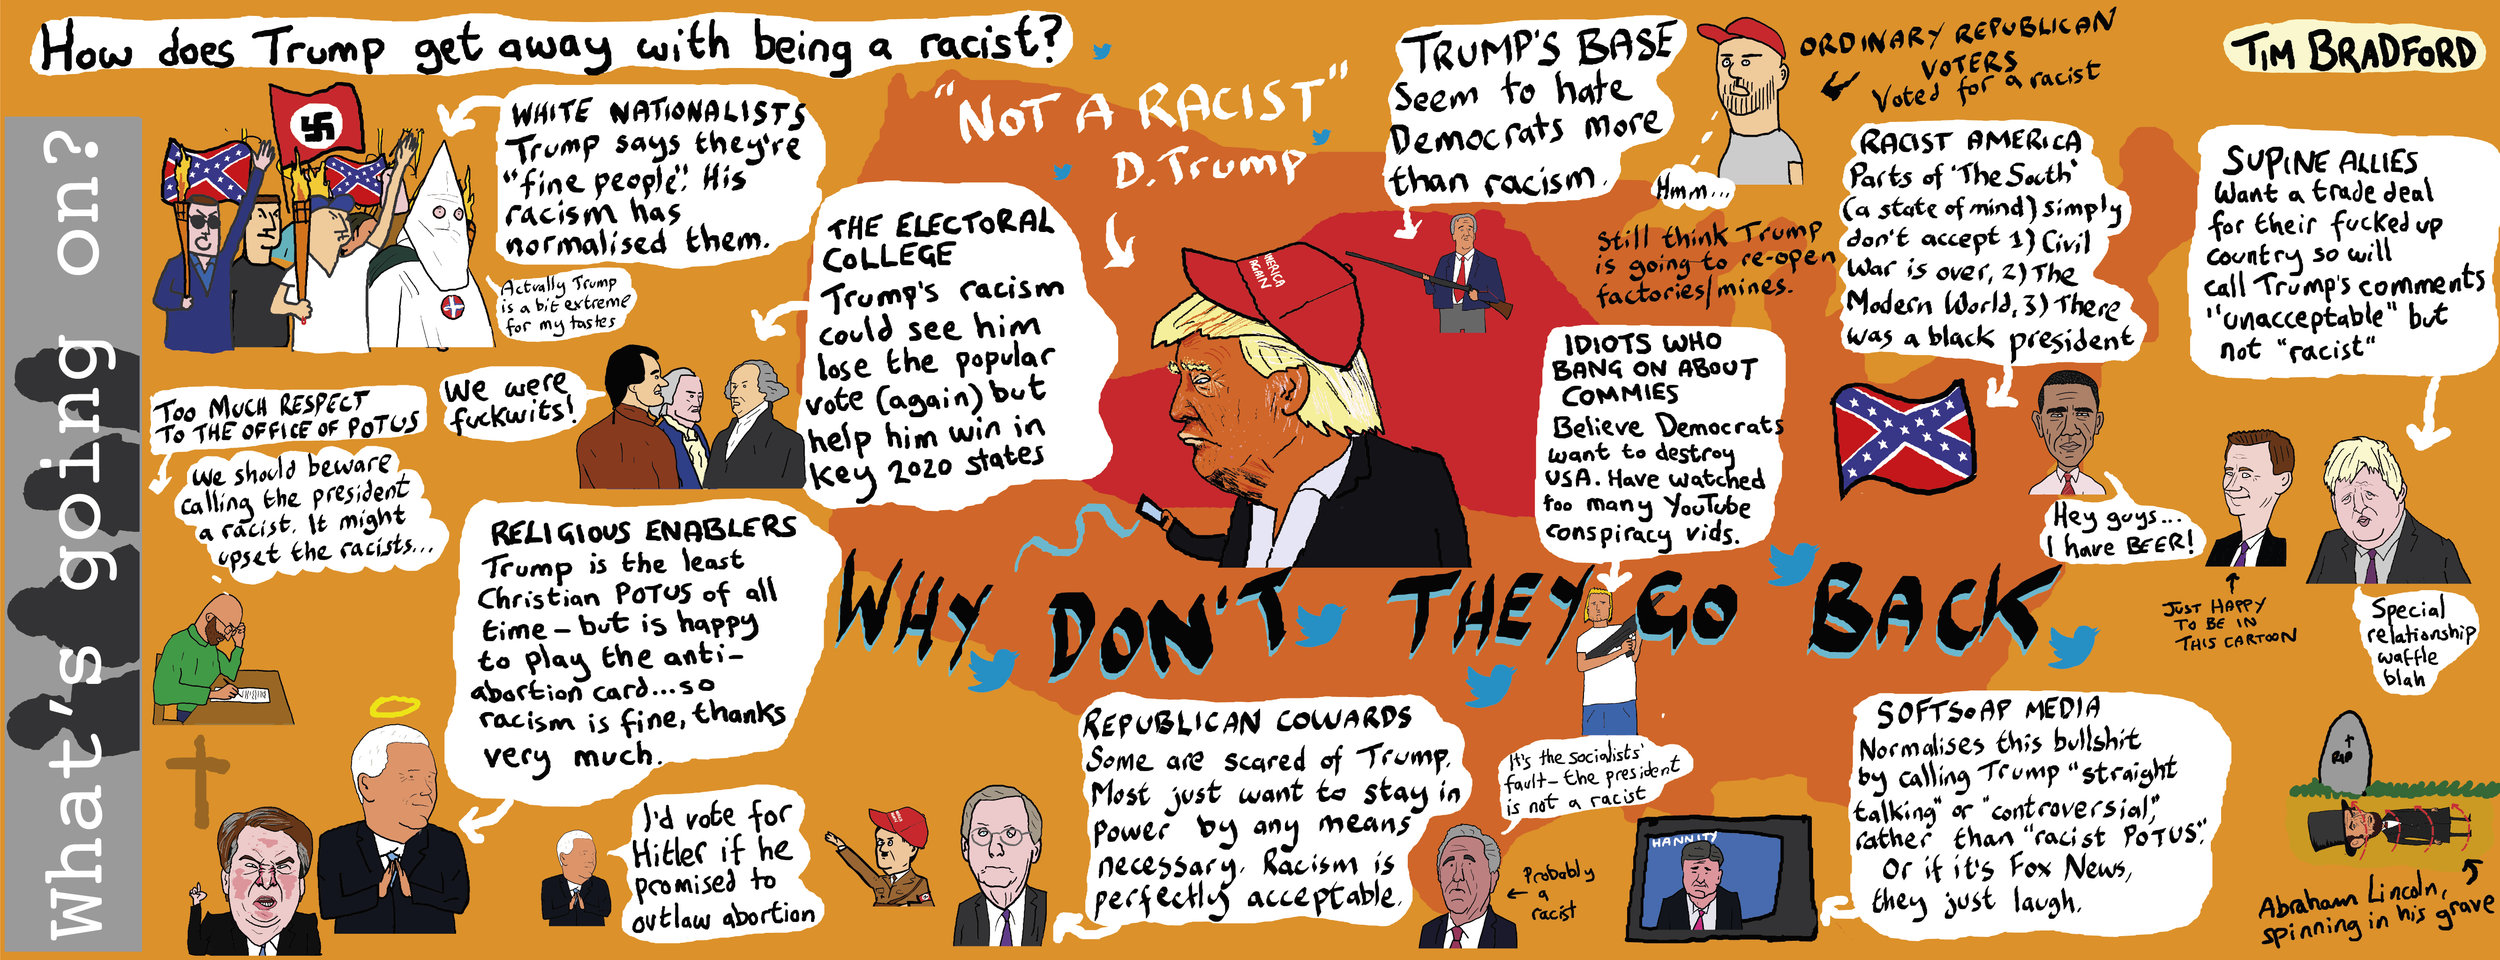 How does Trump get away with being a racist? - 16/07/19